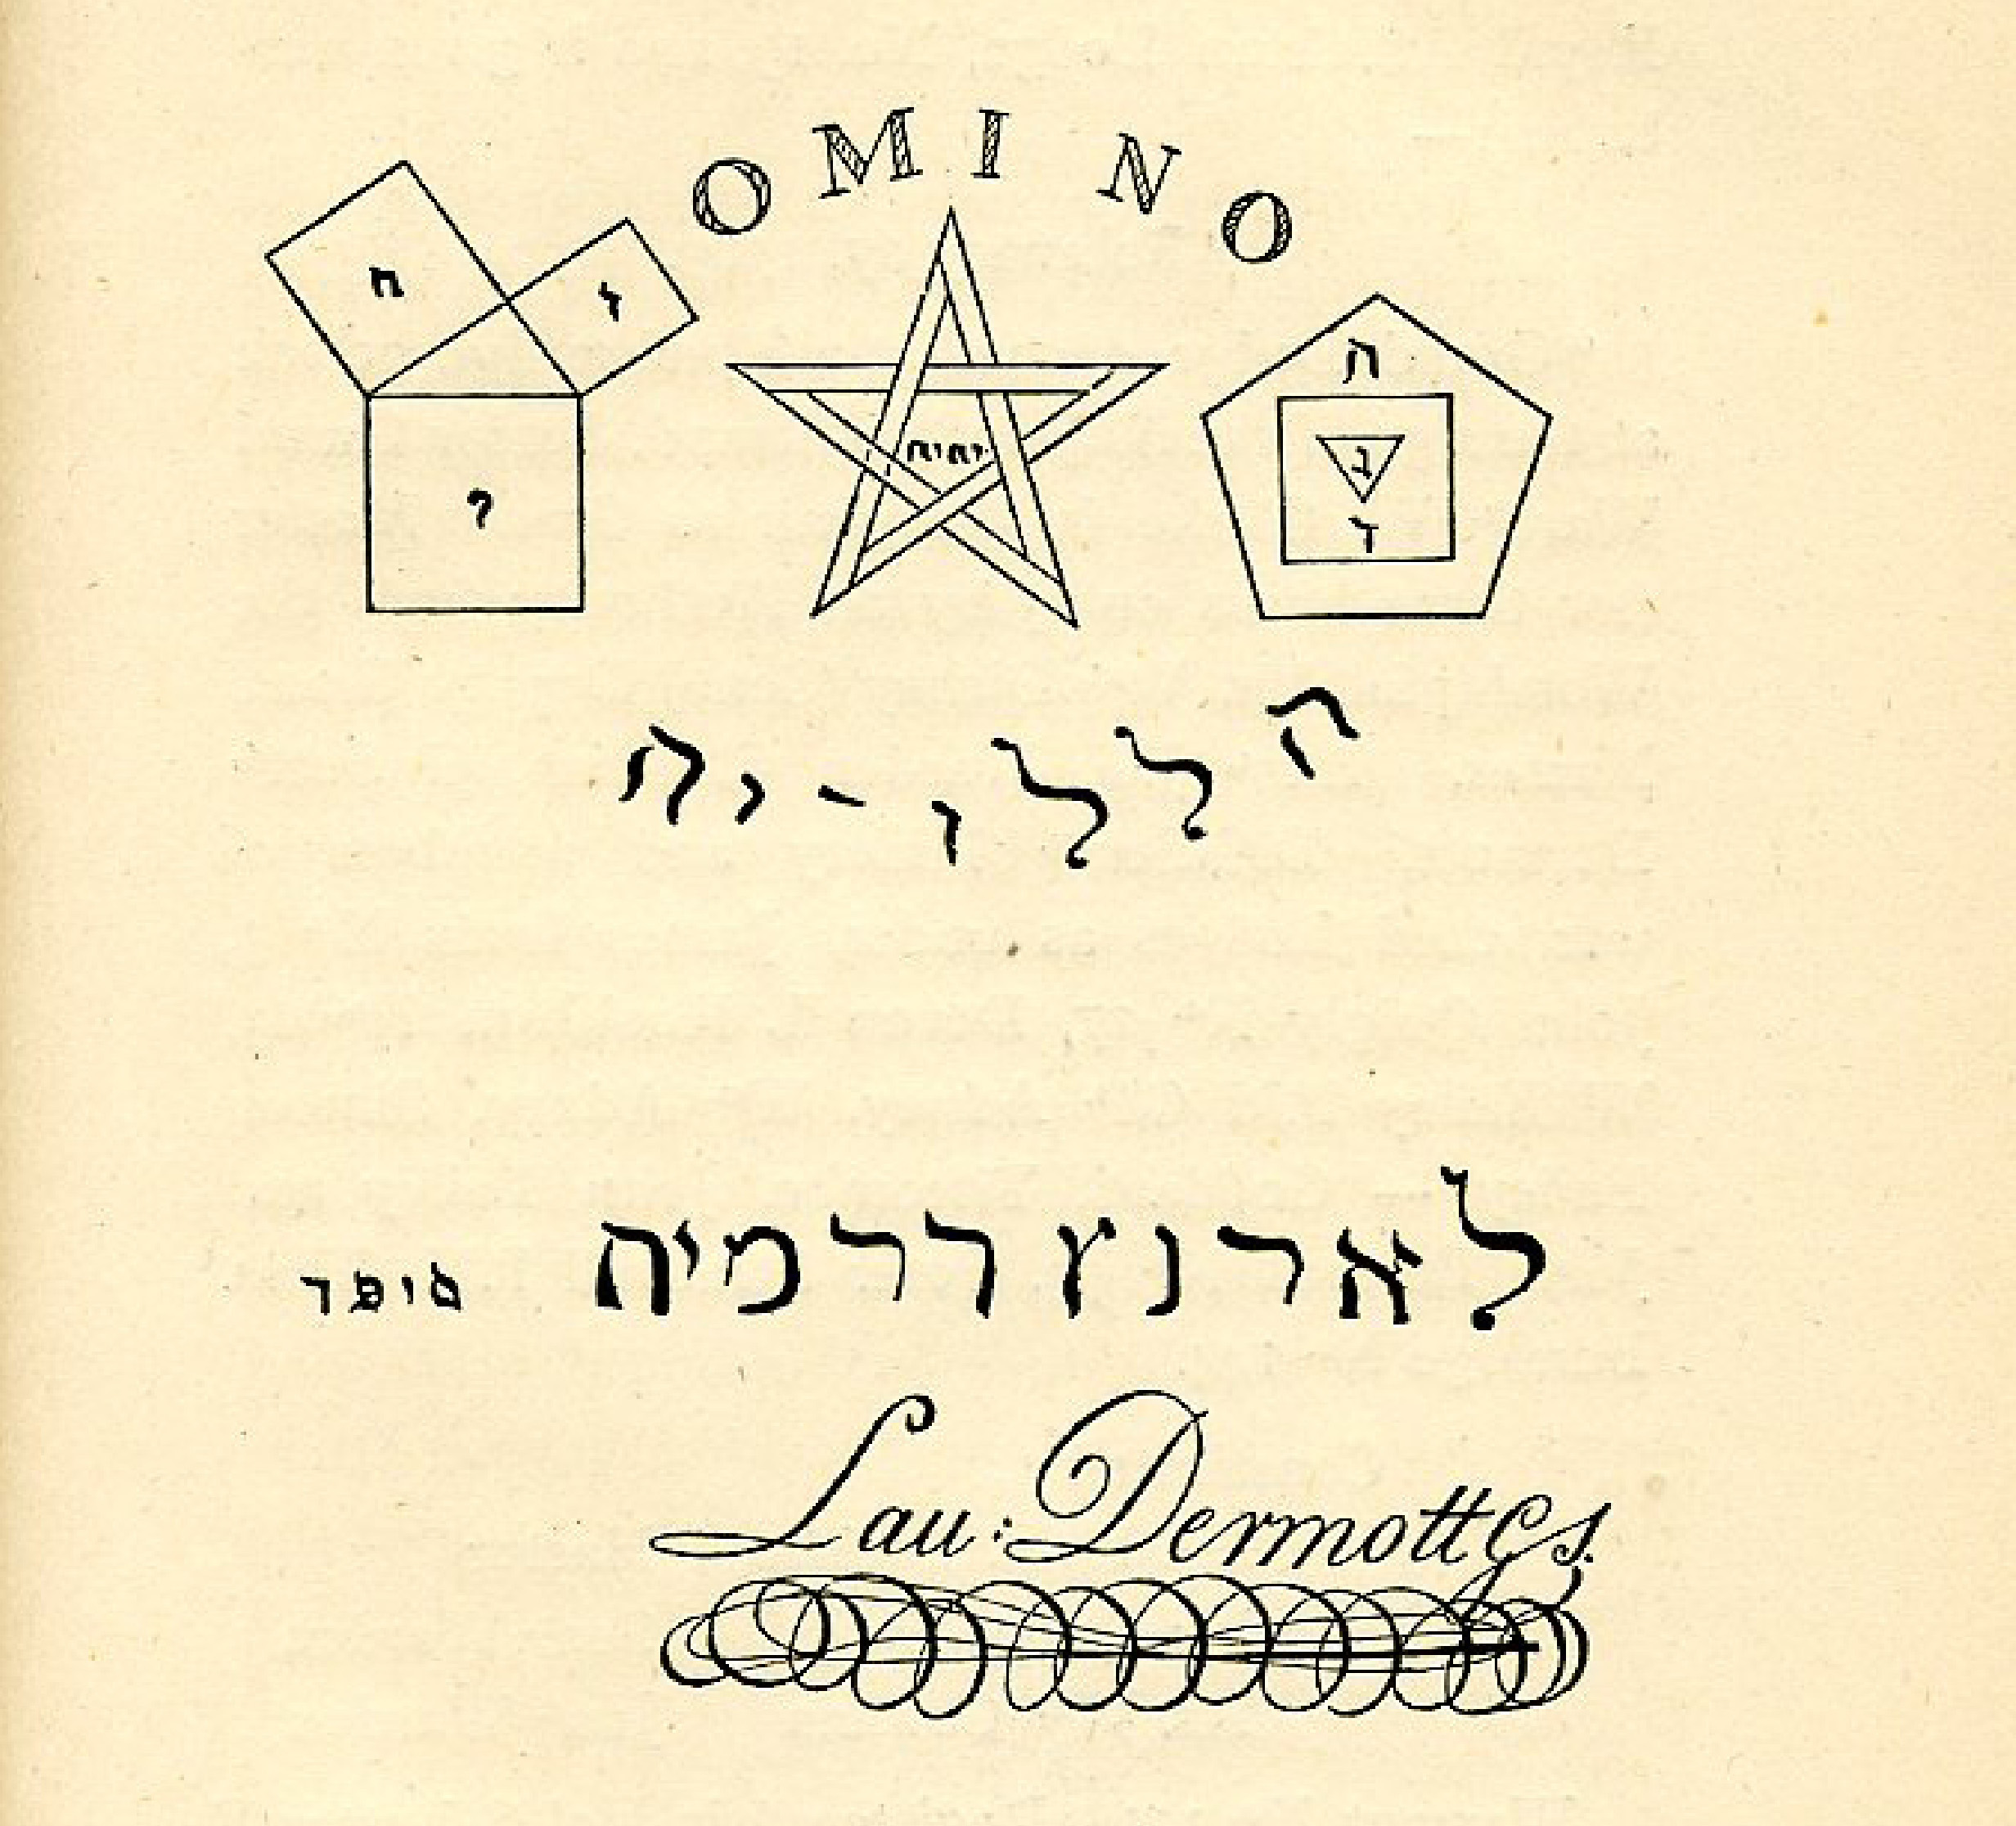 Page from the Minute Book of the Ancient's Grand Lodge in Dermott's Hand